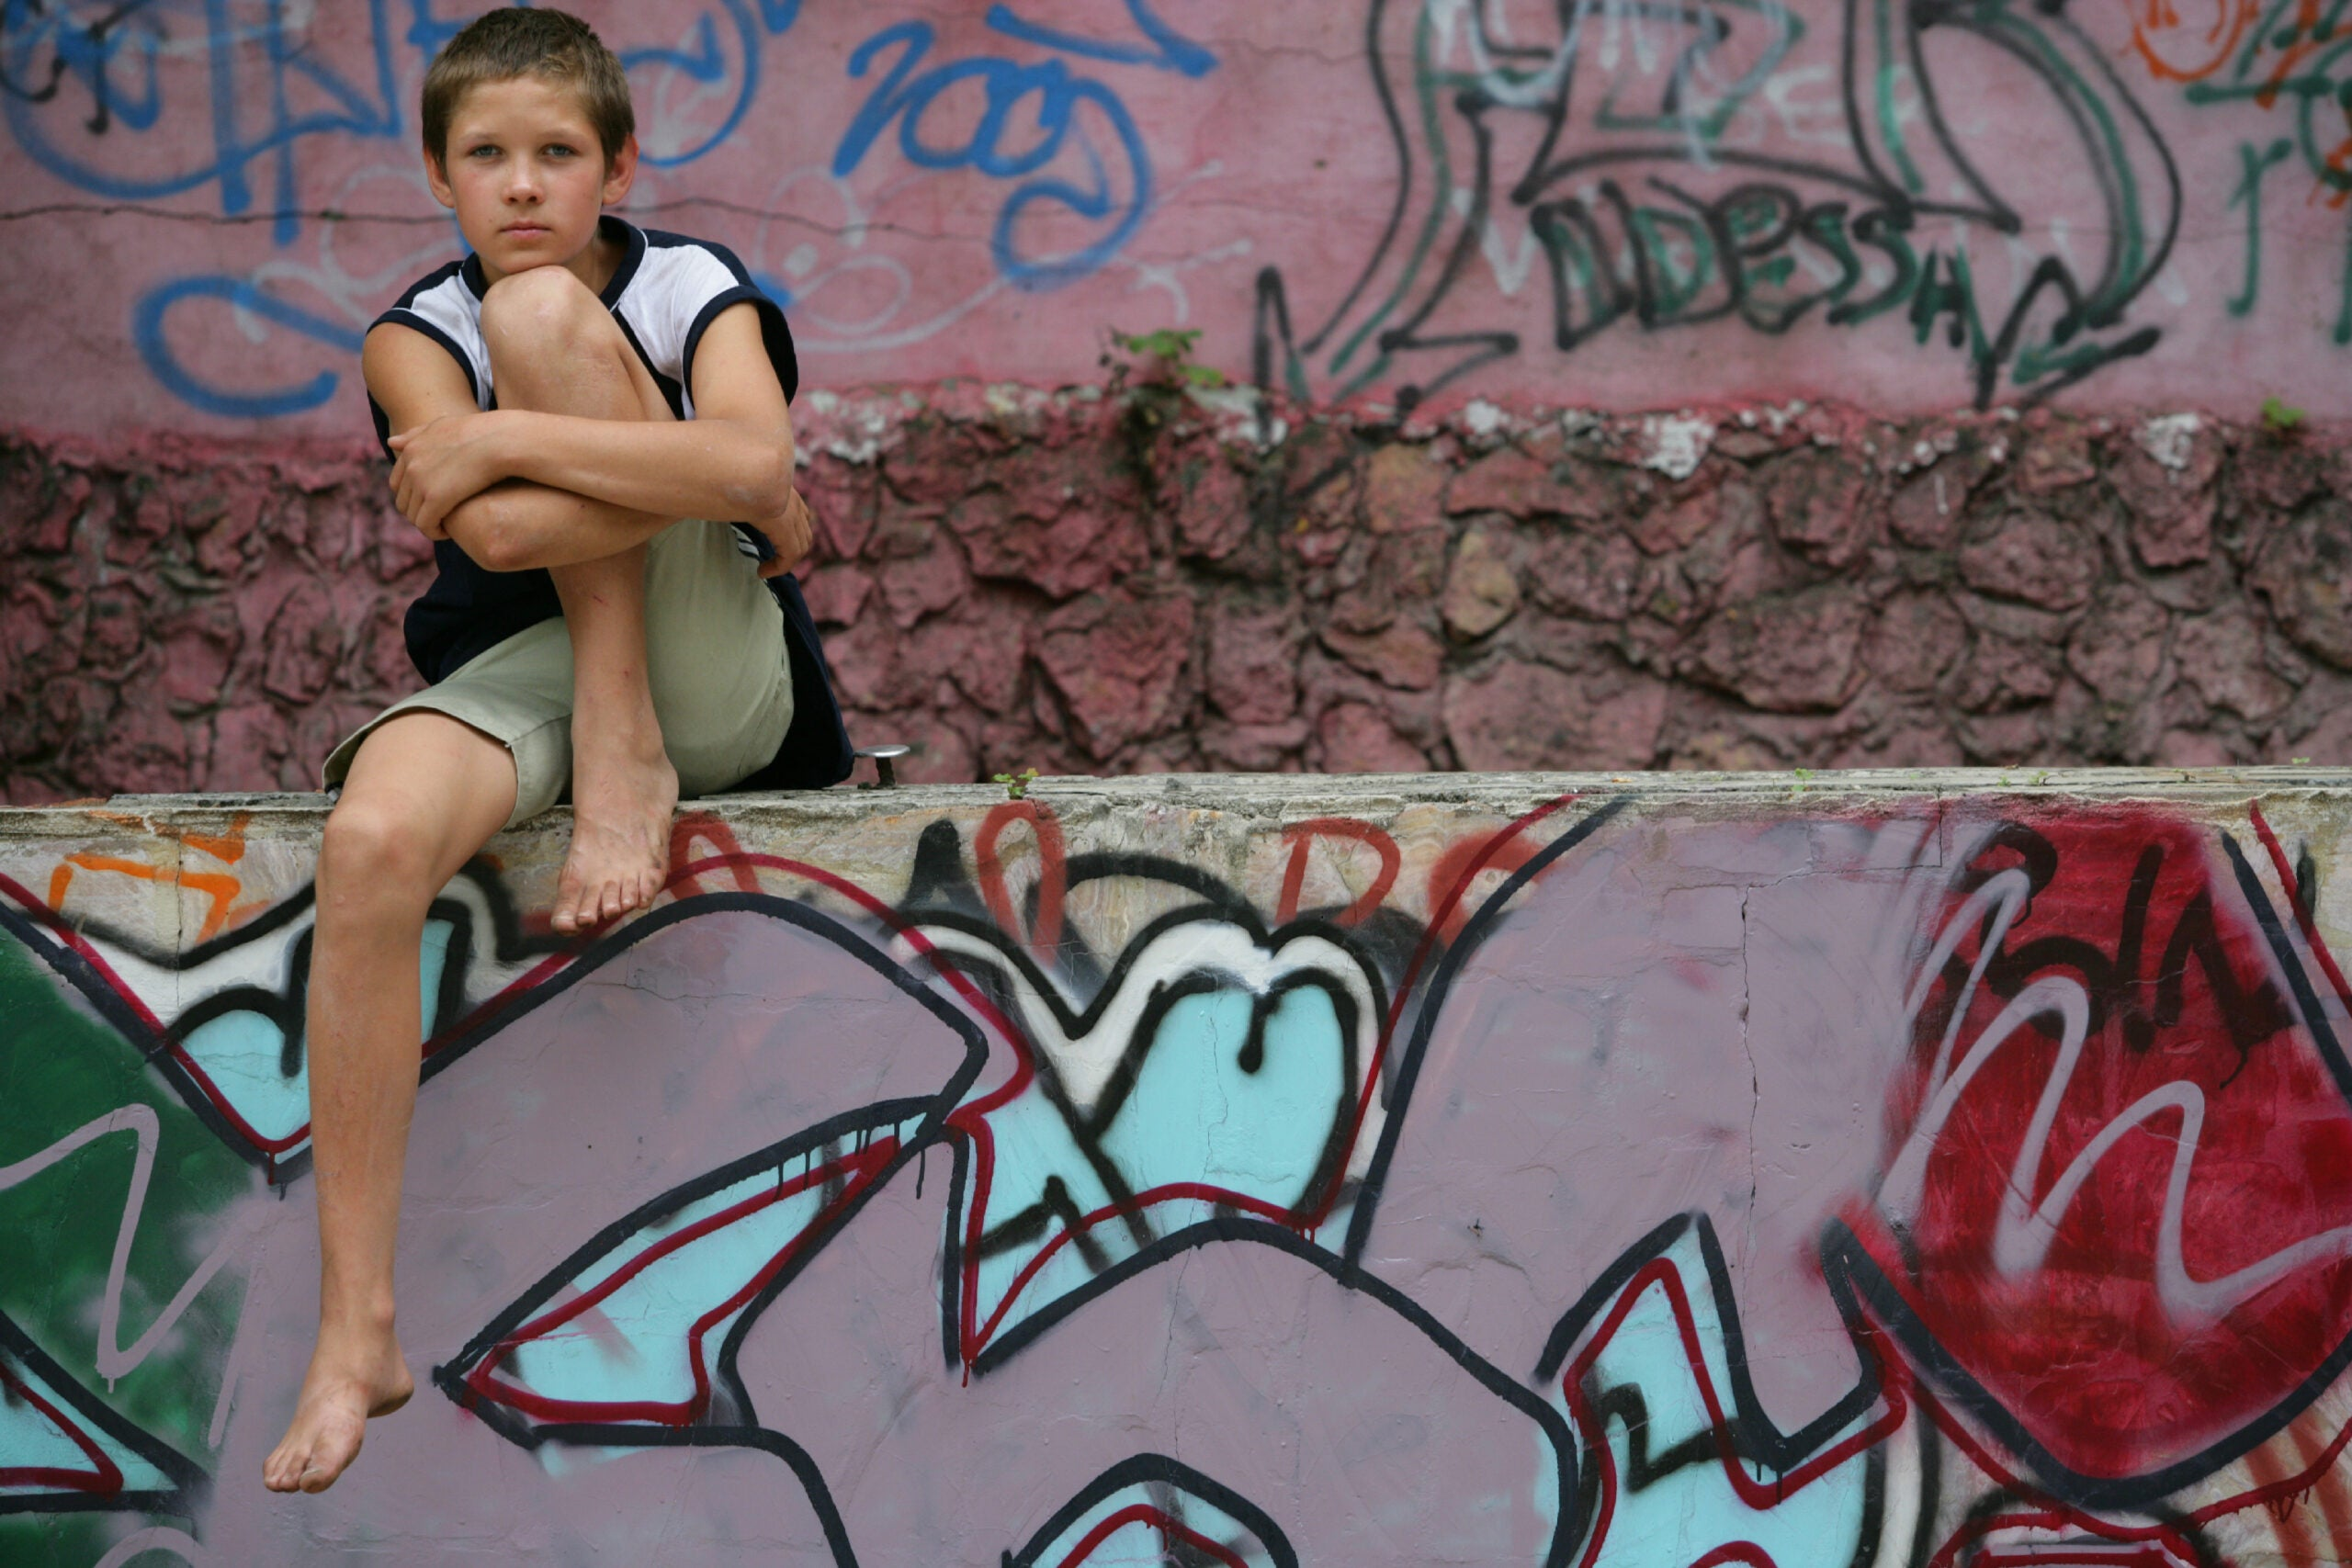 Even when developing countries receive global aid, teens miss out